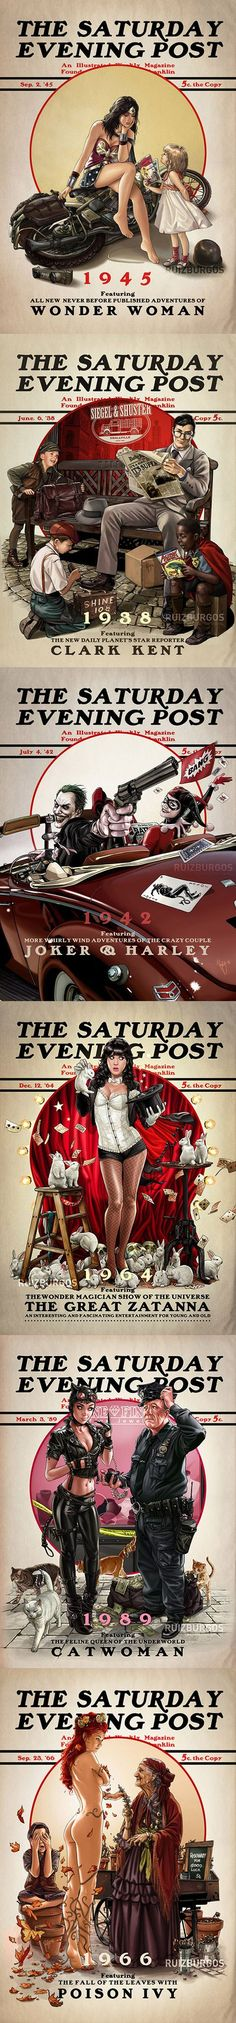 "Norman Rockwell inspired ""Saturday Evening Post"" series by OnlyMilo @deviantart a.k.a. Ruiz Burgos"